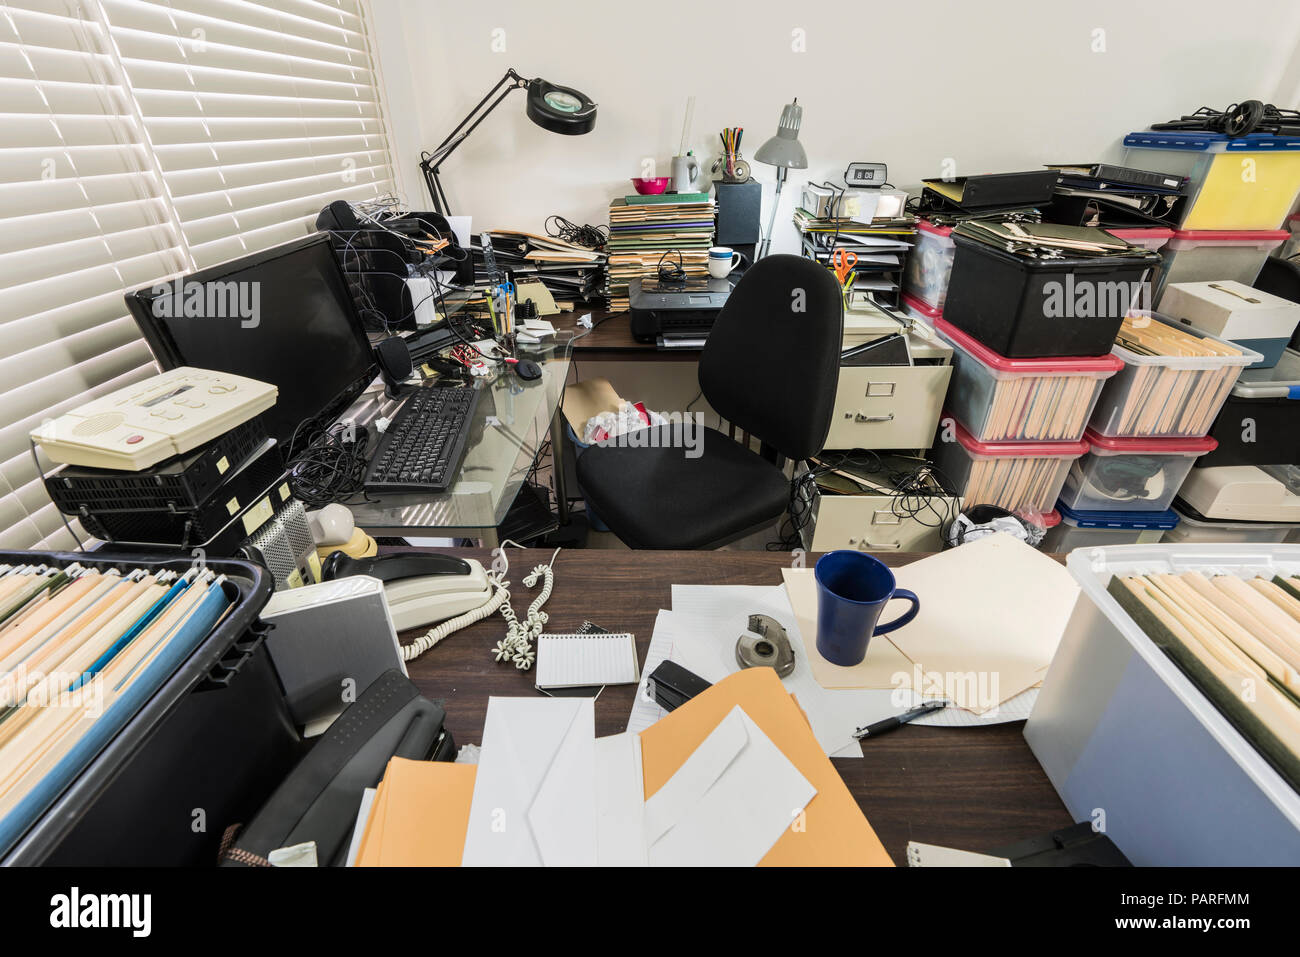 Messy business office with piles of files and disorganized clutter. - Stock Image